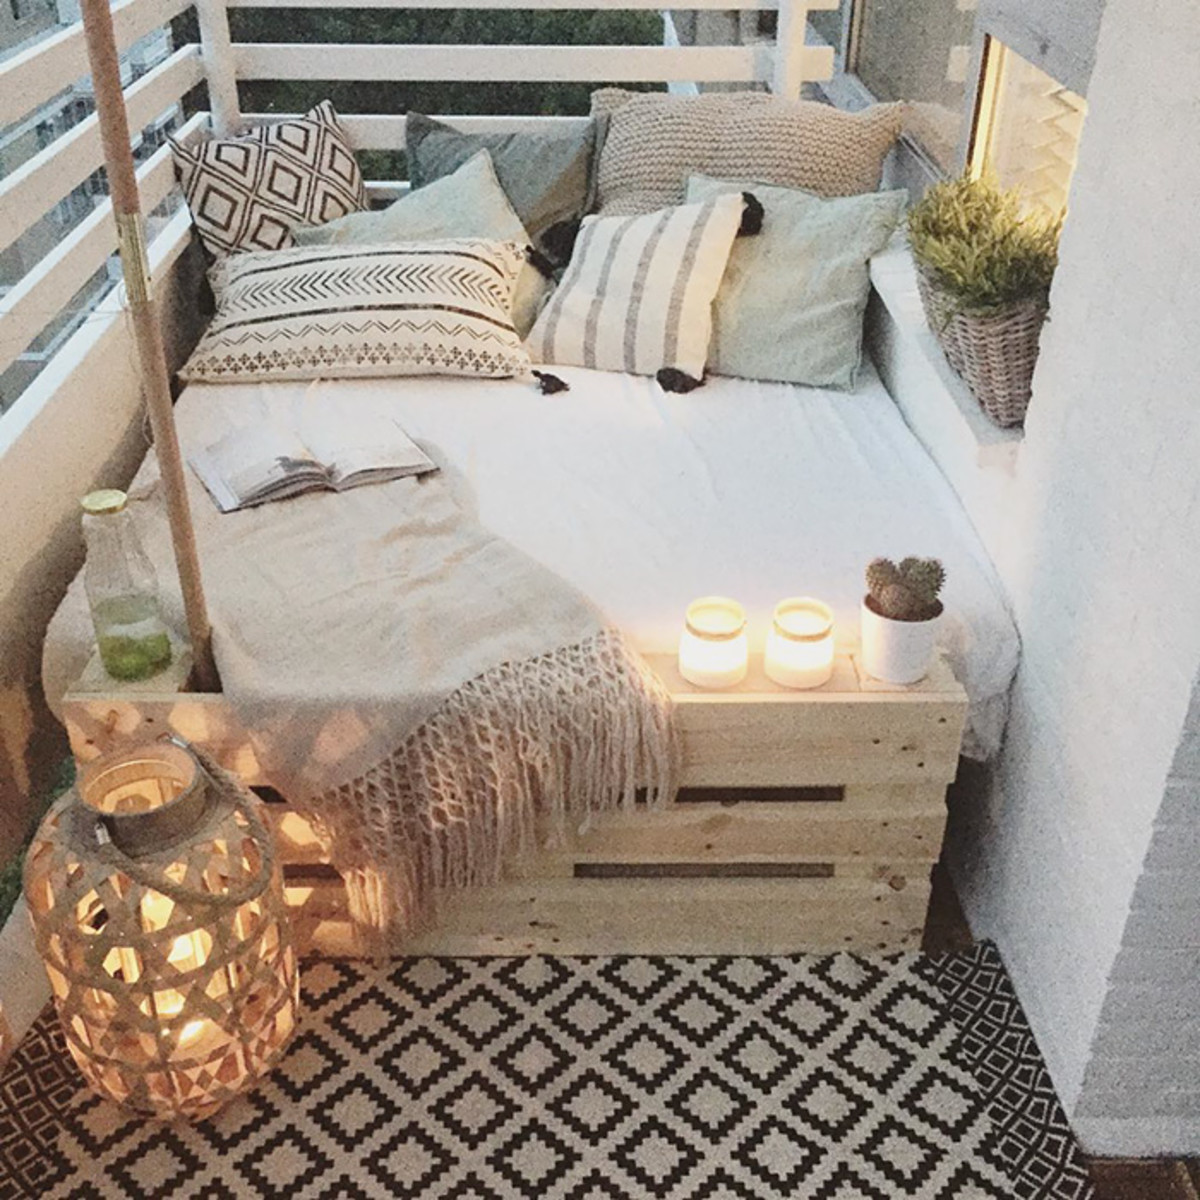 A cozy outdoor living room extends your indoor space.